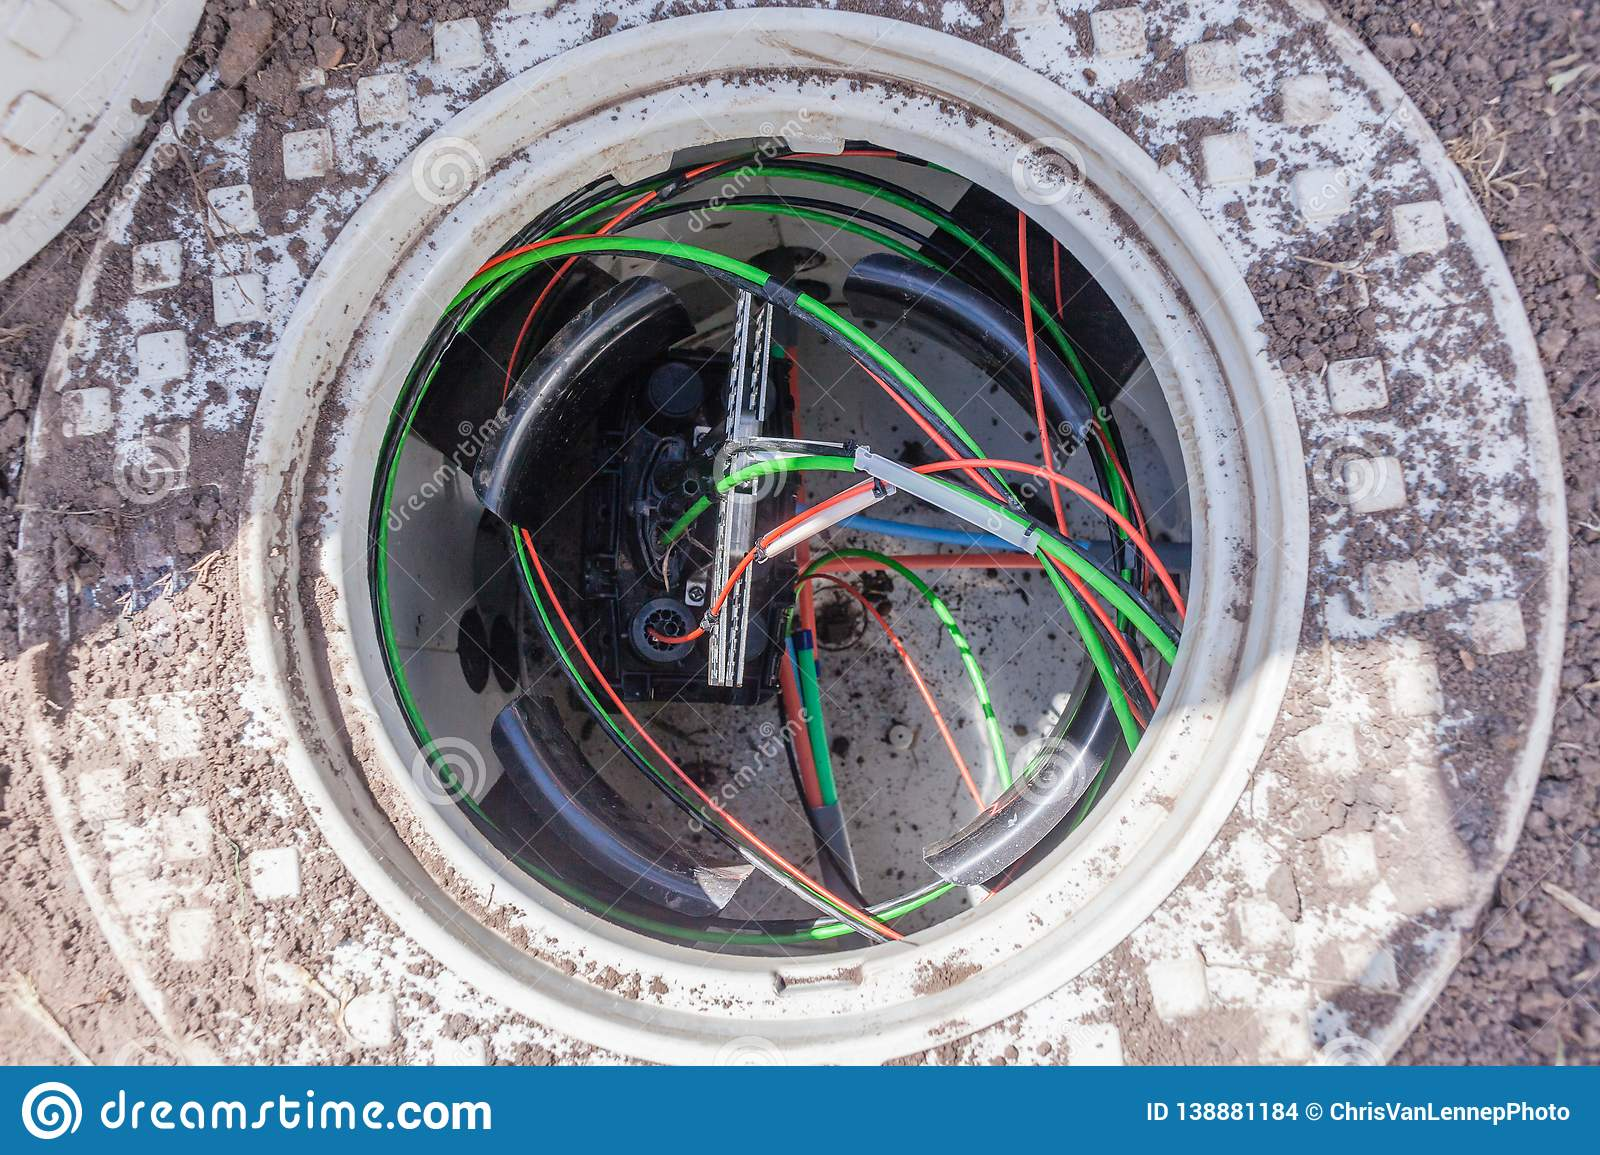 New Fiber Optic Cables Underground Internet Connection Box Stock